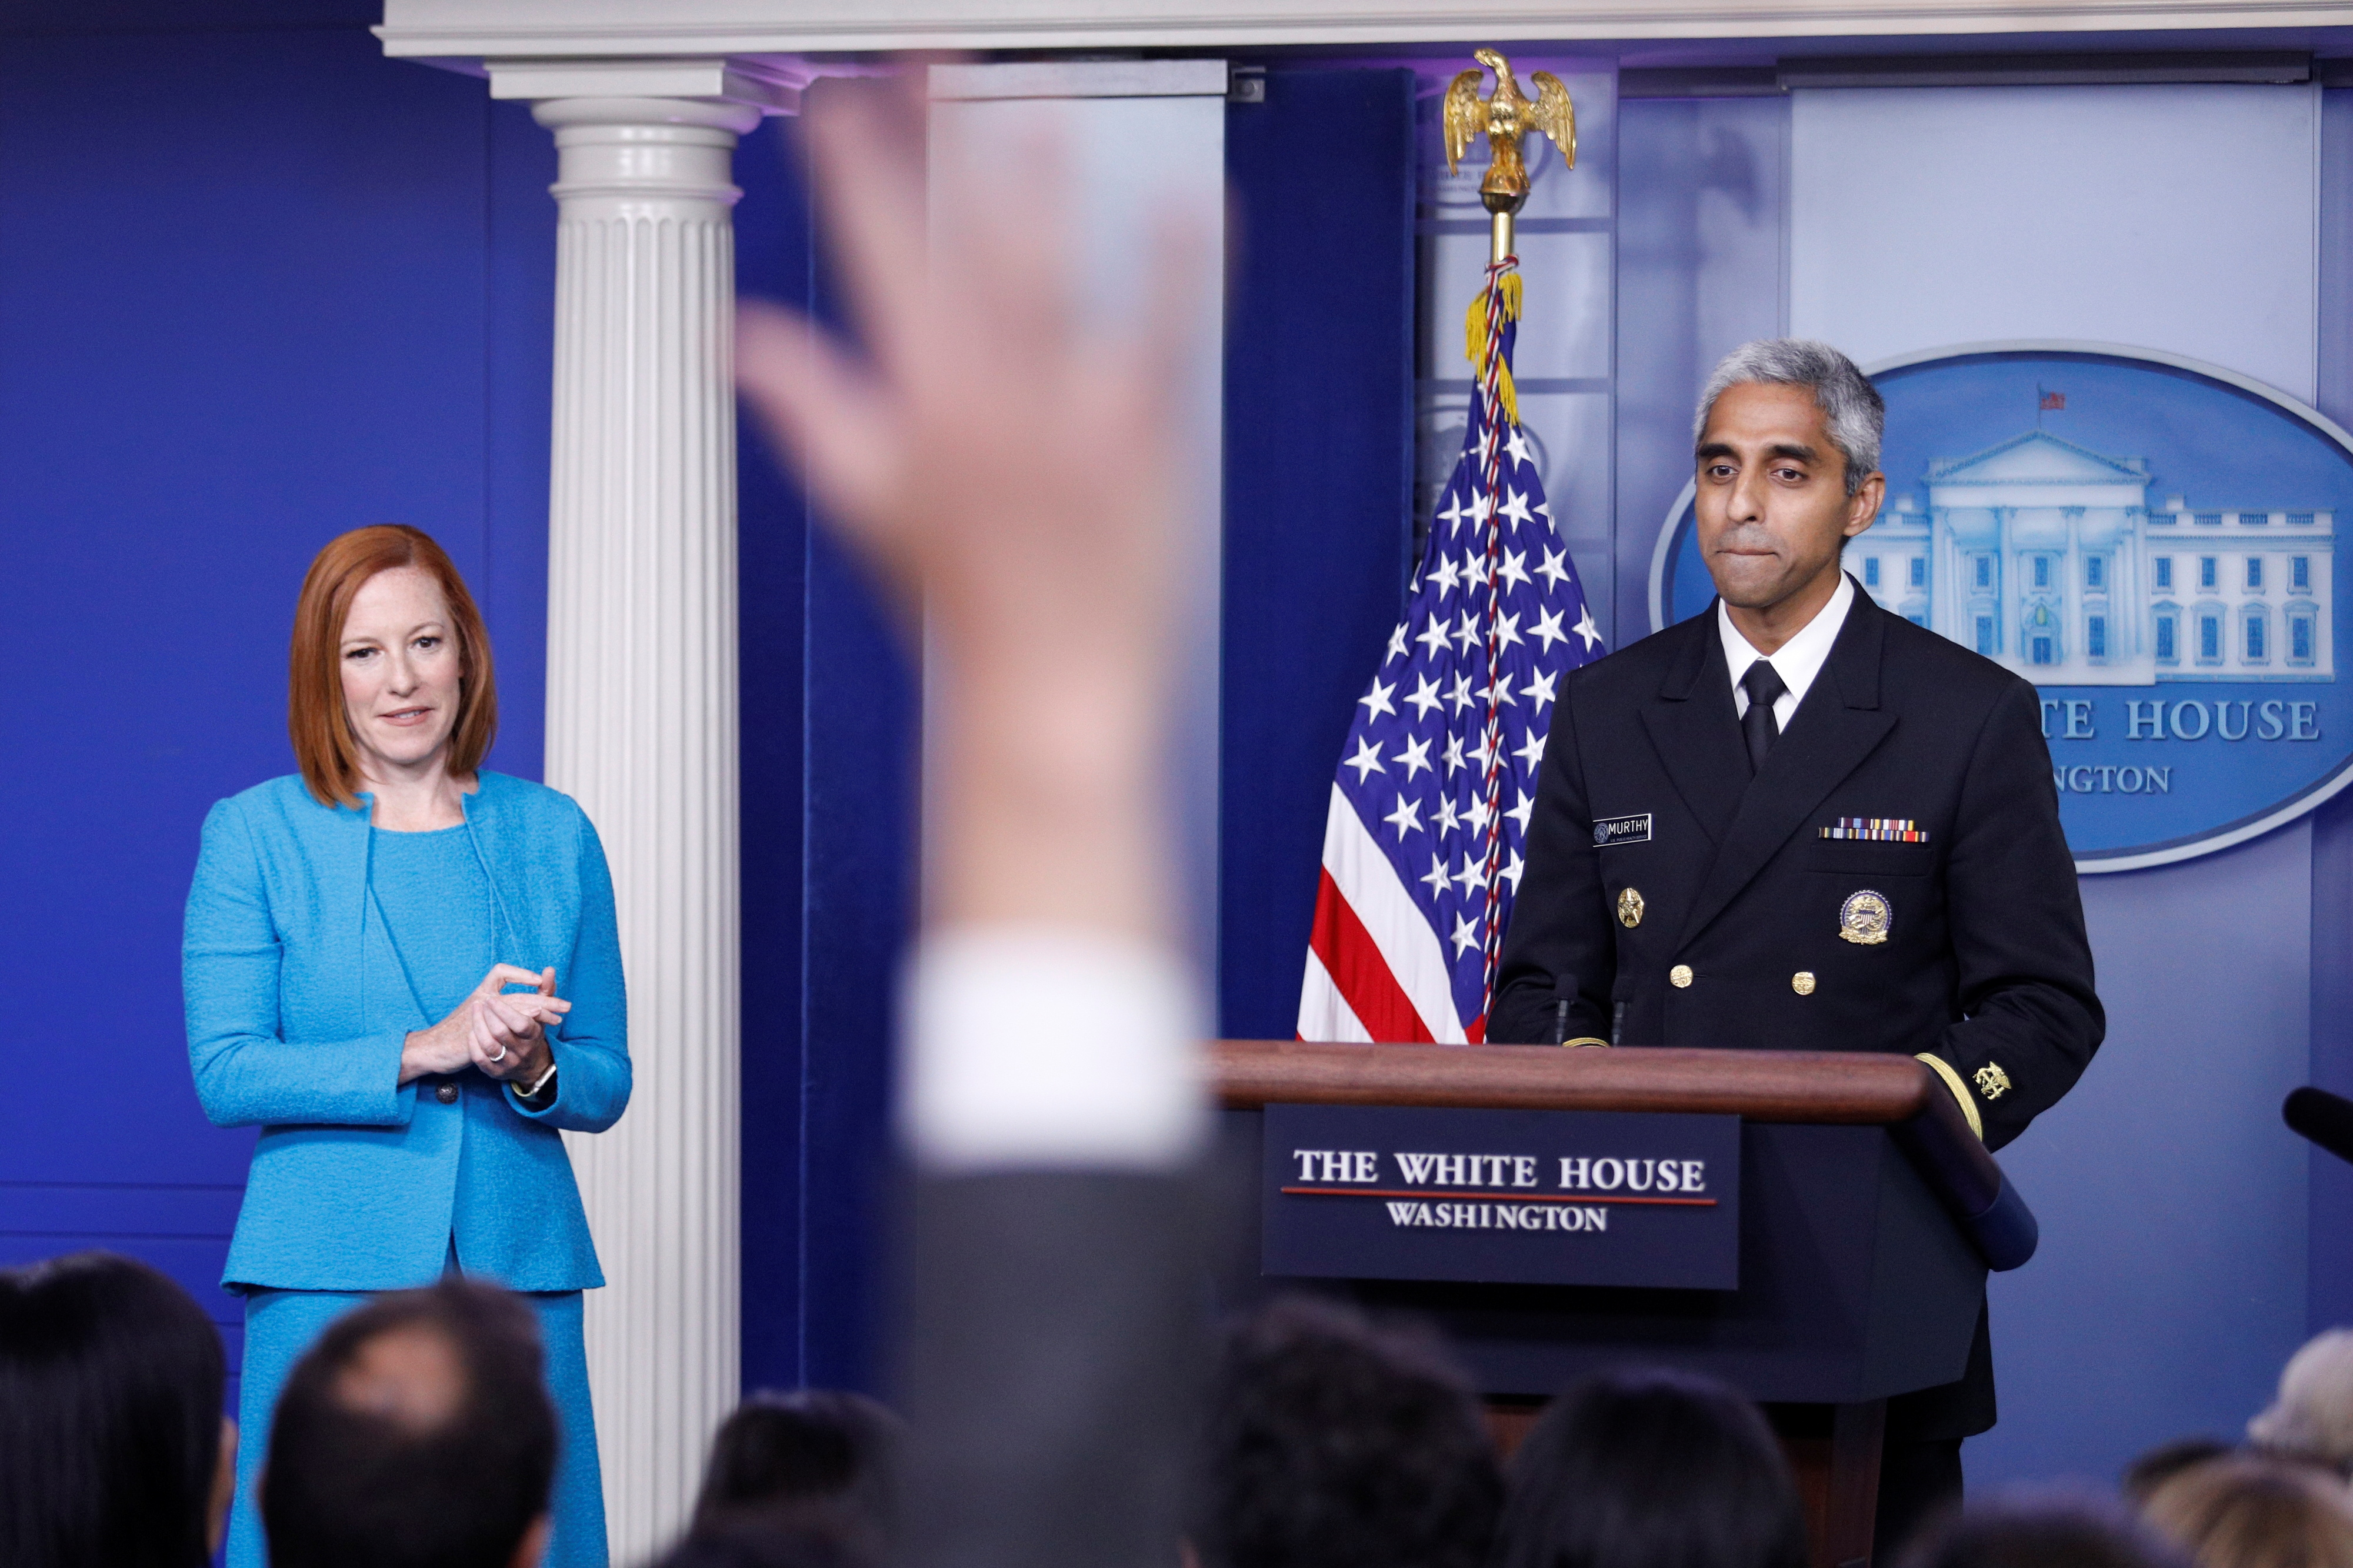 A journalist raises a hand to ask a question during United States Surgeon General Vivek Murthy's remarks at a news conference with White House Press Secretary Jen Psaki at the White House in Washington, U.S., July15, 2021. REUTERS/Tom Brenner